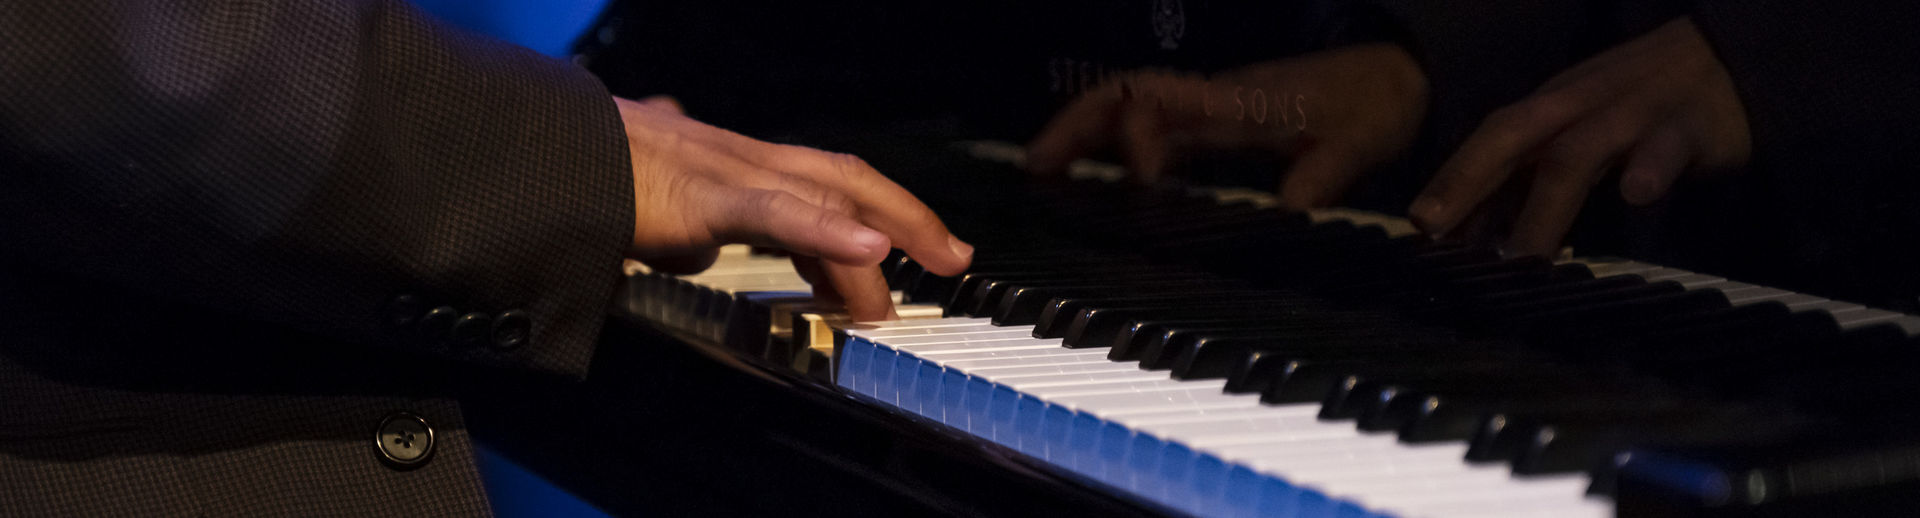 Hands are seen playing the piano.